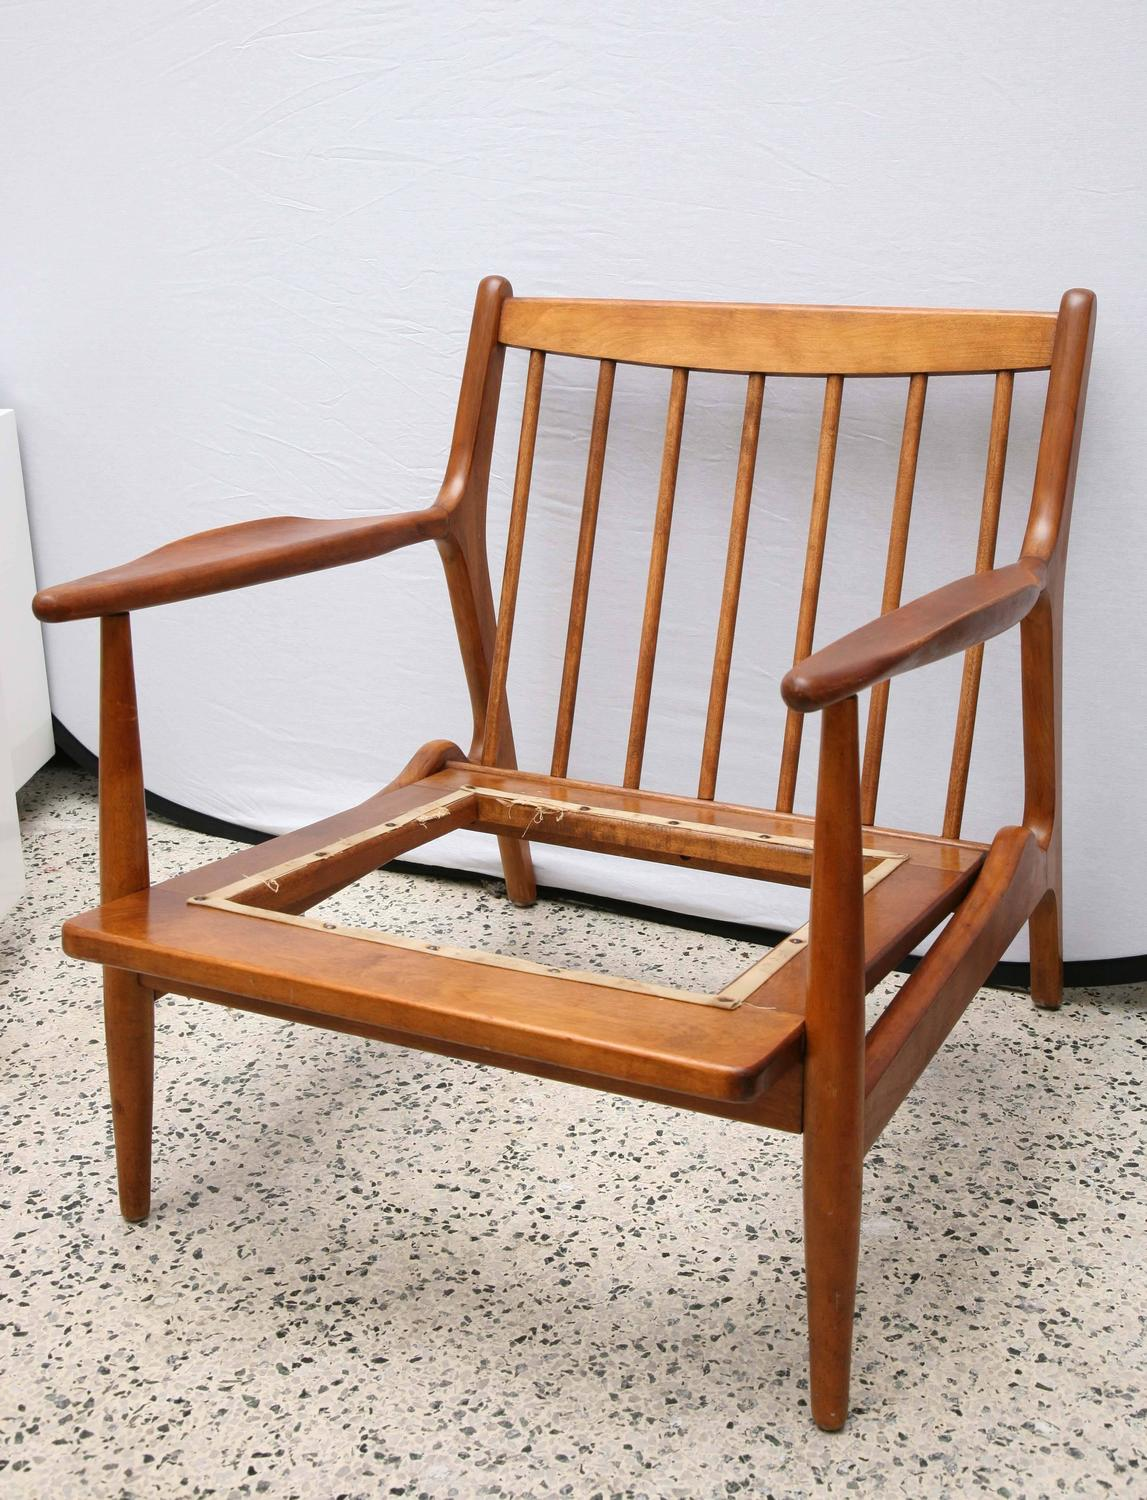 Teak Chair By Conant Ball 1950s USA For Sale At 1stdibs